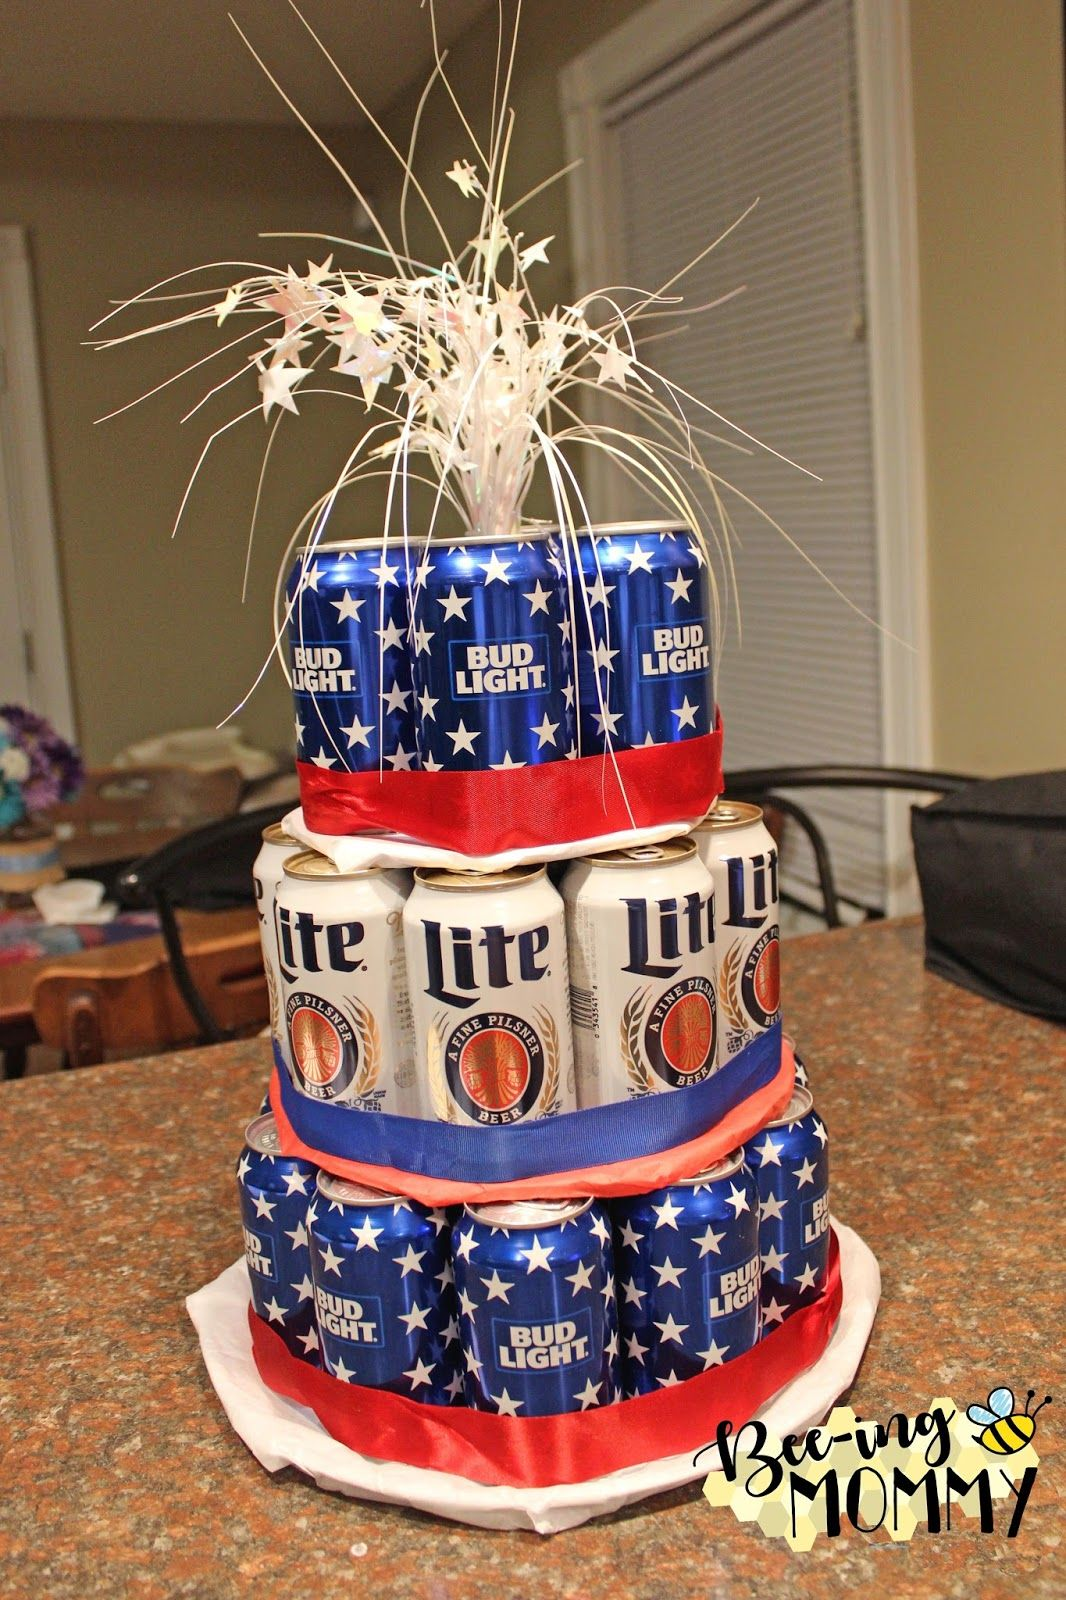 Astonishing Beer Can Cake Tutorial With Images Beer Can Cakes Cake In A Funny Birthday Cards Online Alyptdamsfinfo